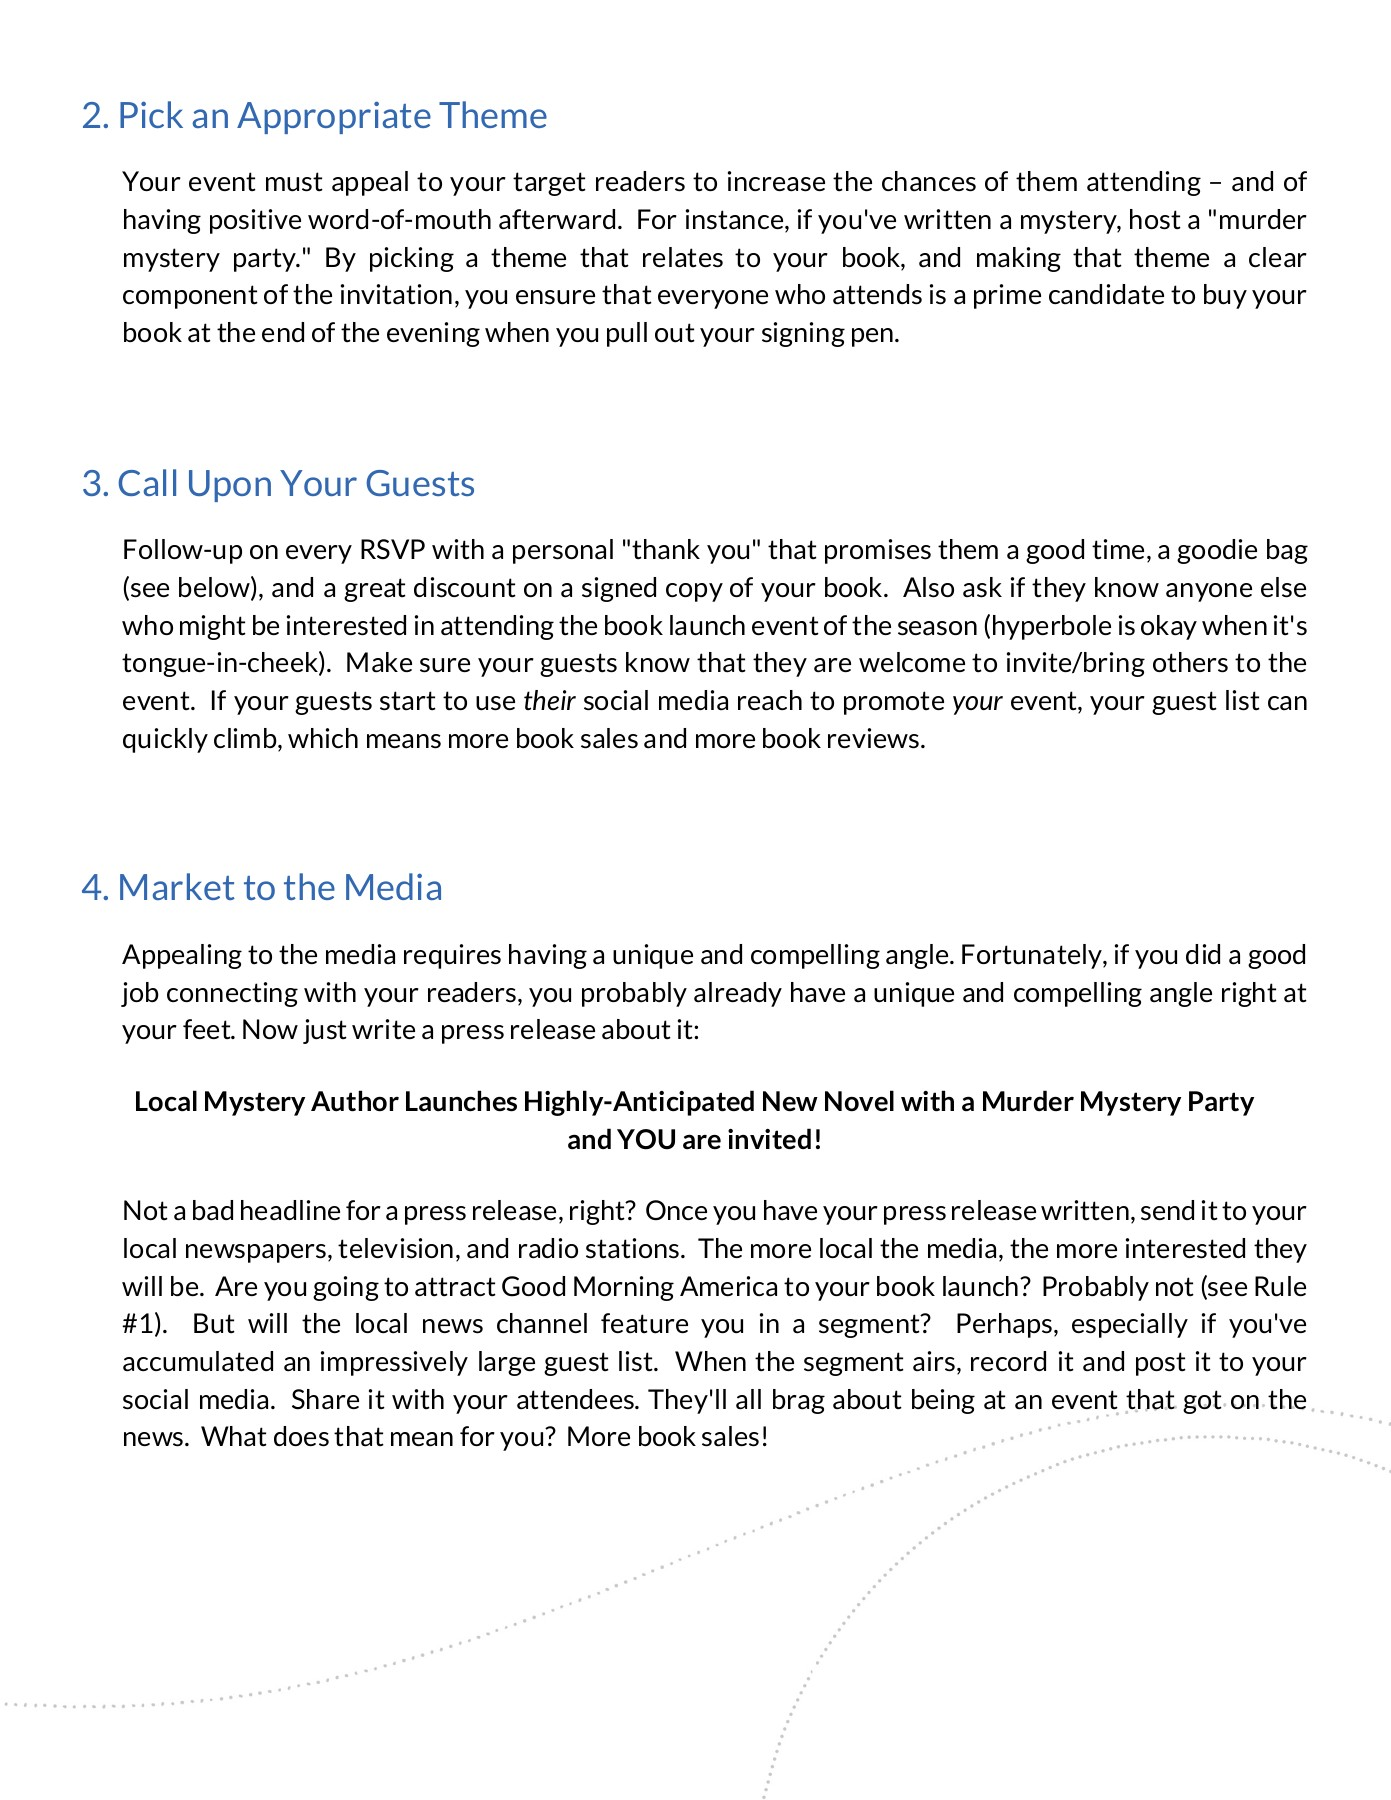 sample press release for an event